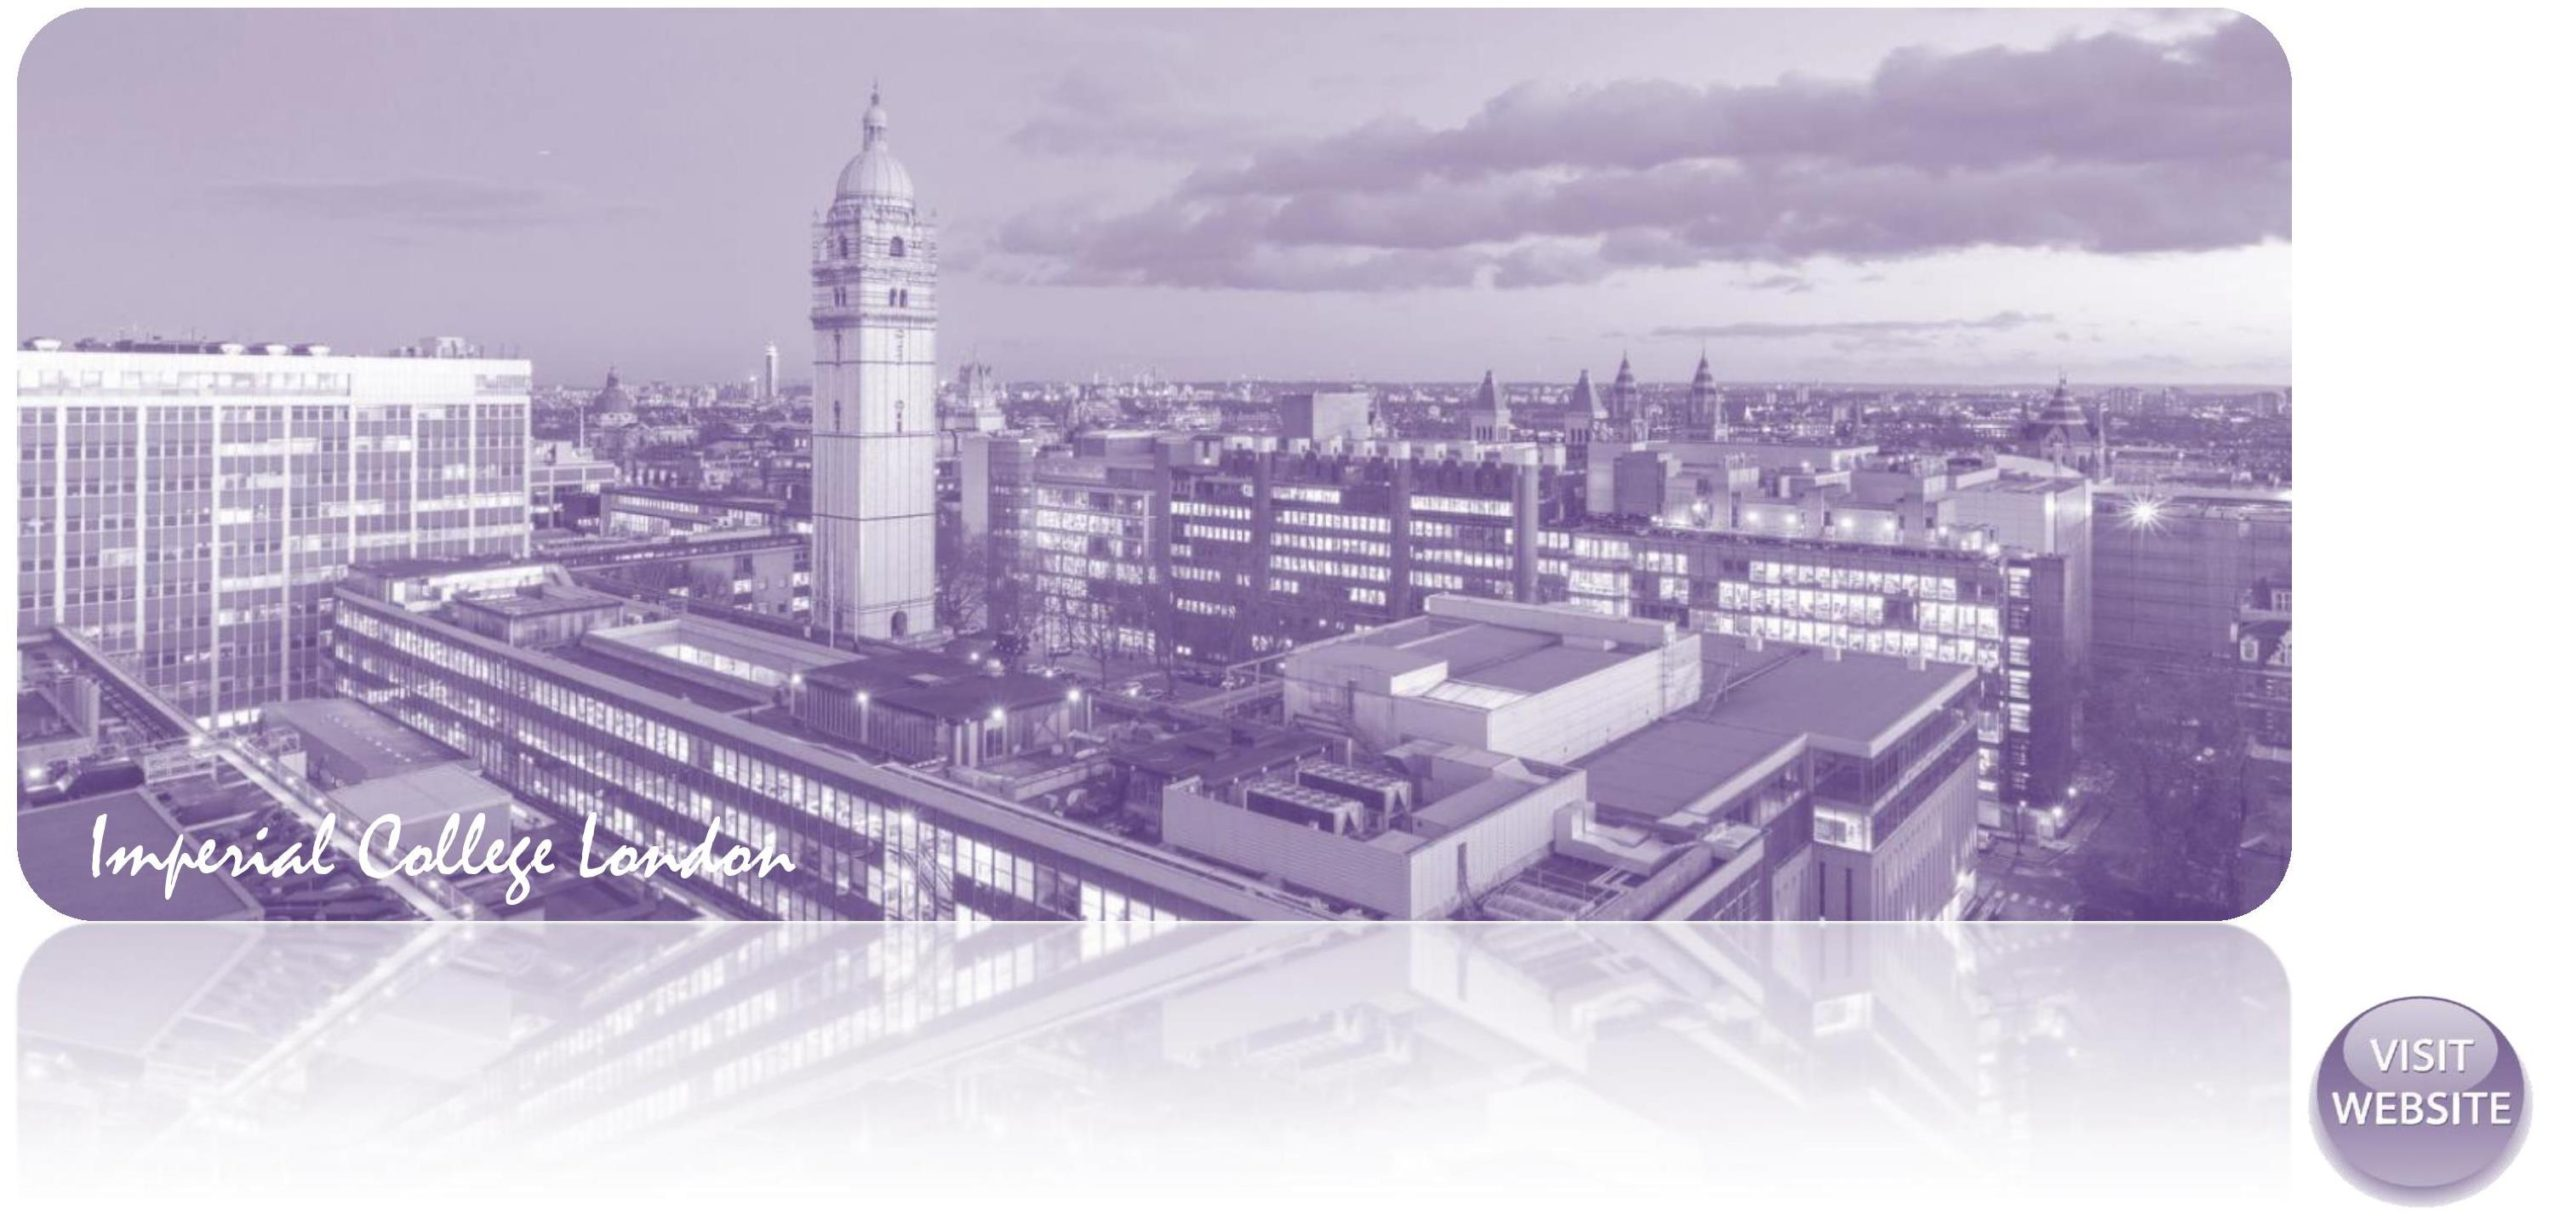 Imperial College London UK